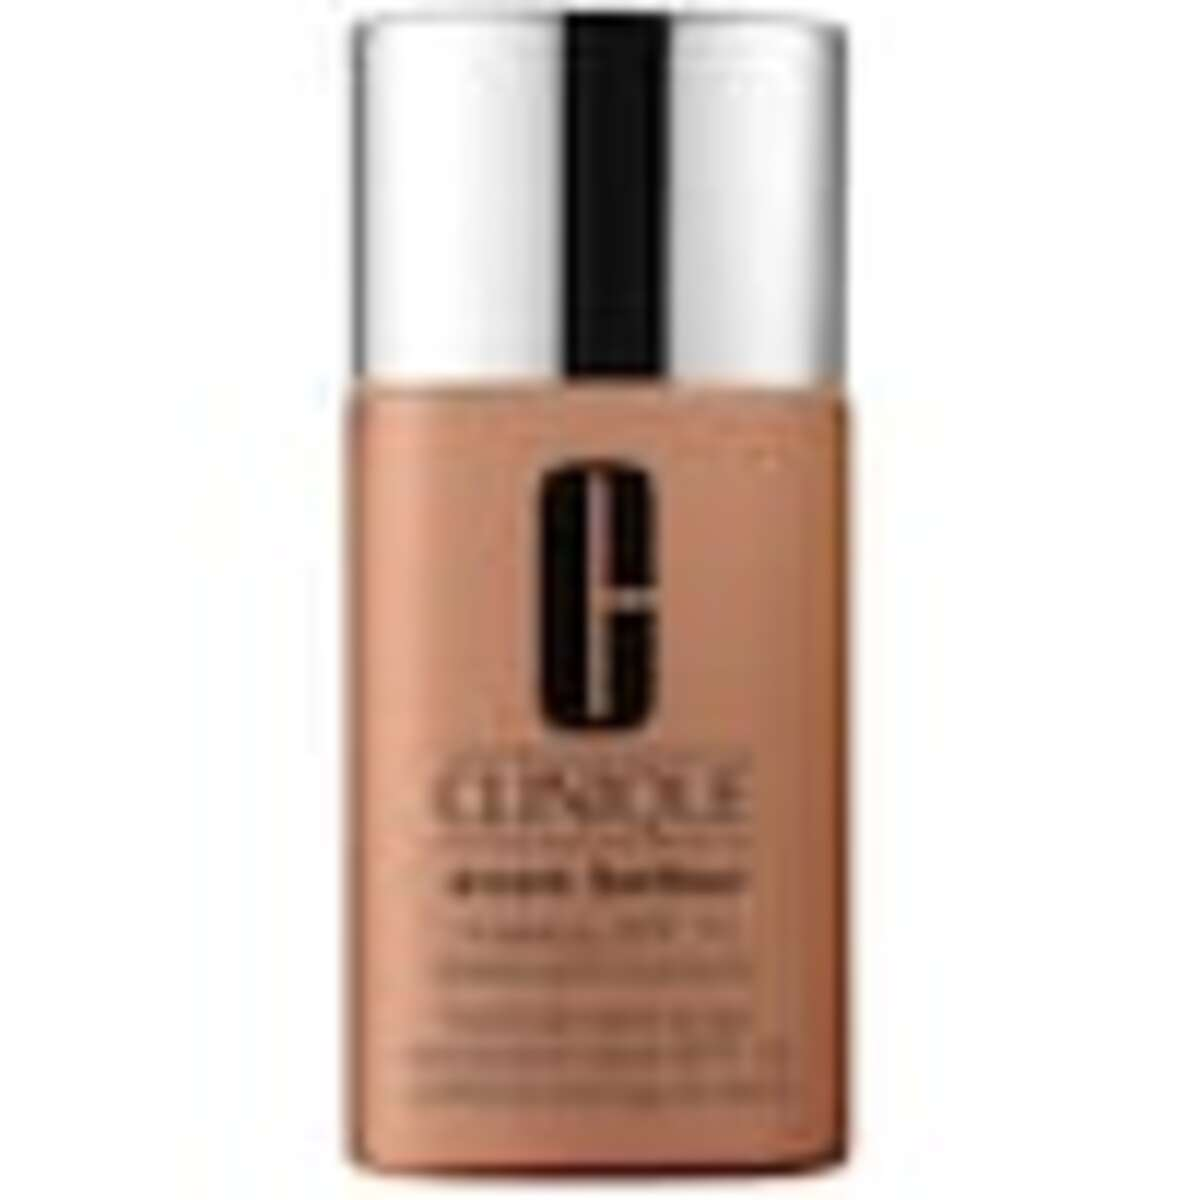 Bild 1 von Clinique Foundation Nr. CN 74 - Beige Foundation 30.0 ml